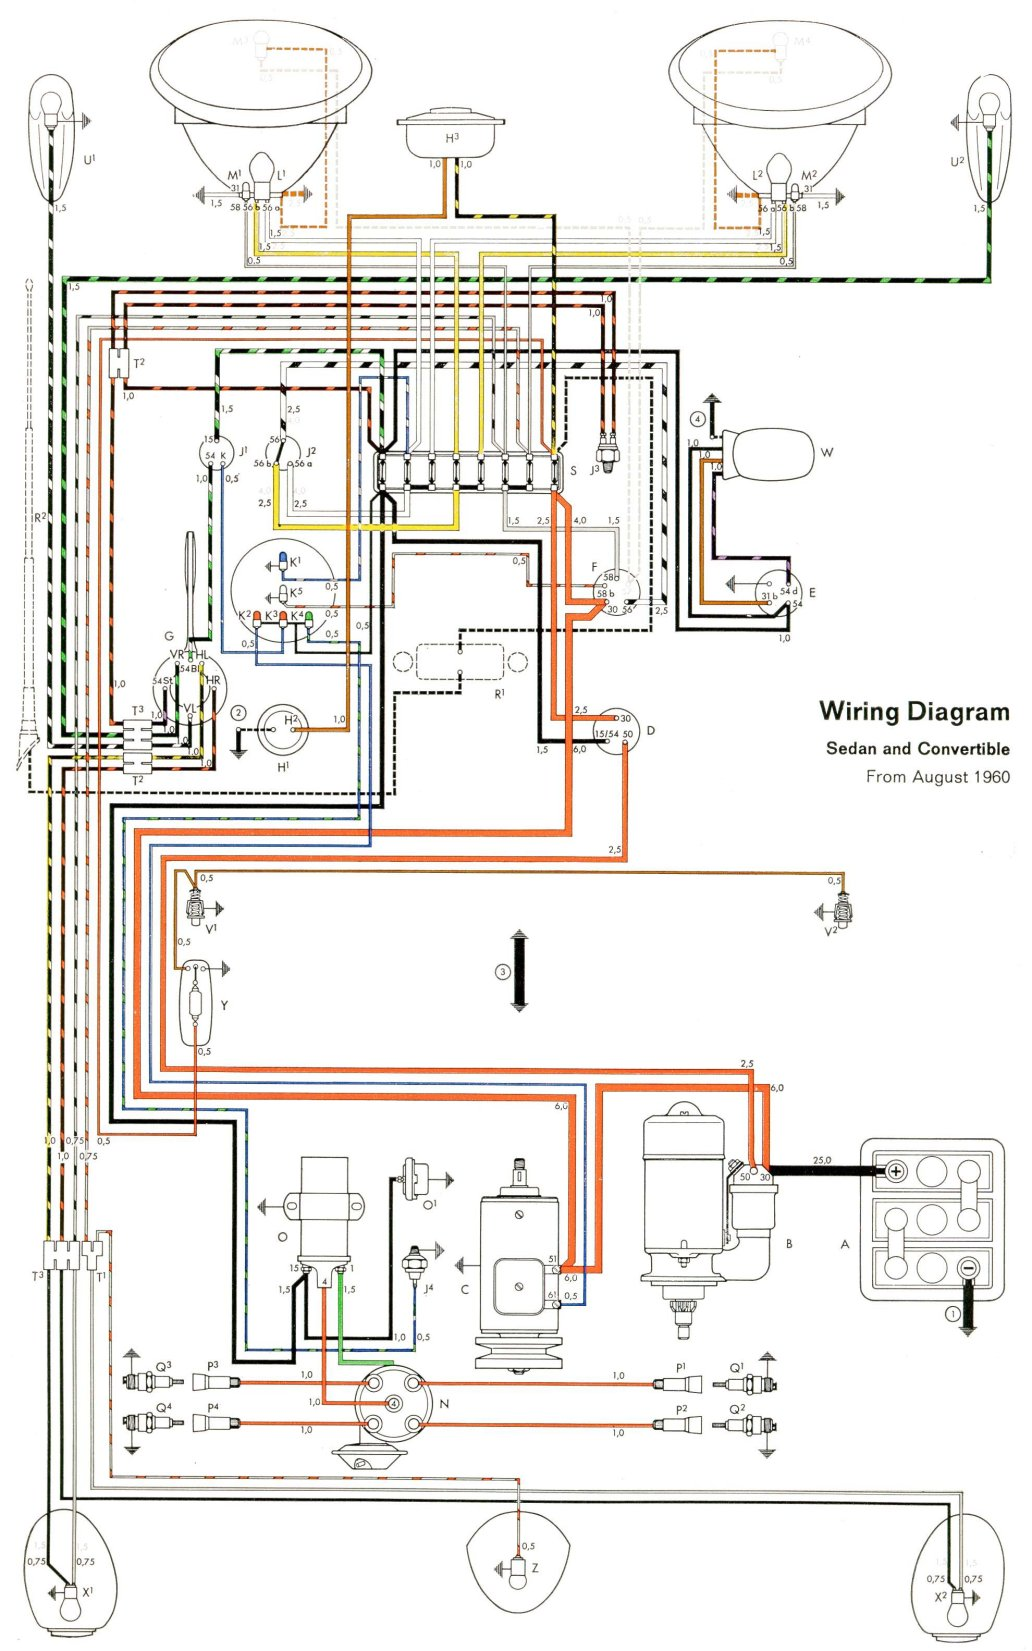 1975 Super Beetle Wiring Diagram Schematics Diagrams Citroen C3 Bsi Thesamba Com Type 1 Rh 1974